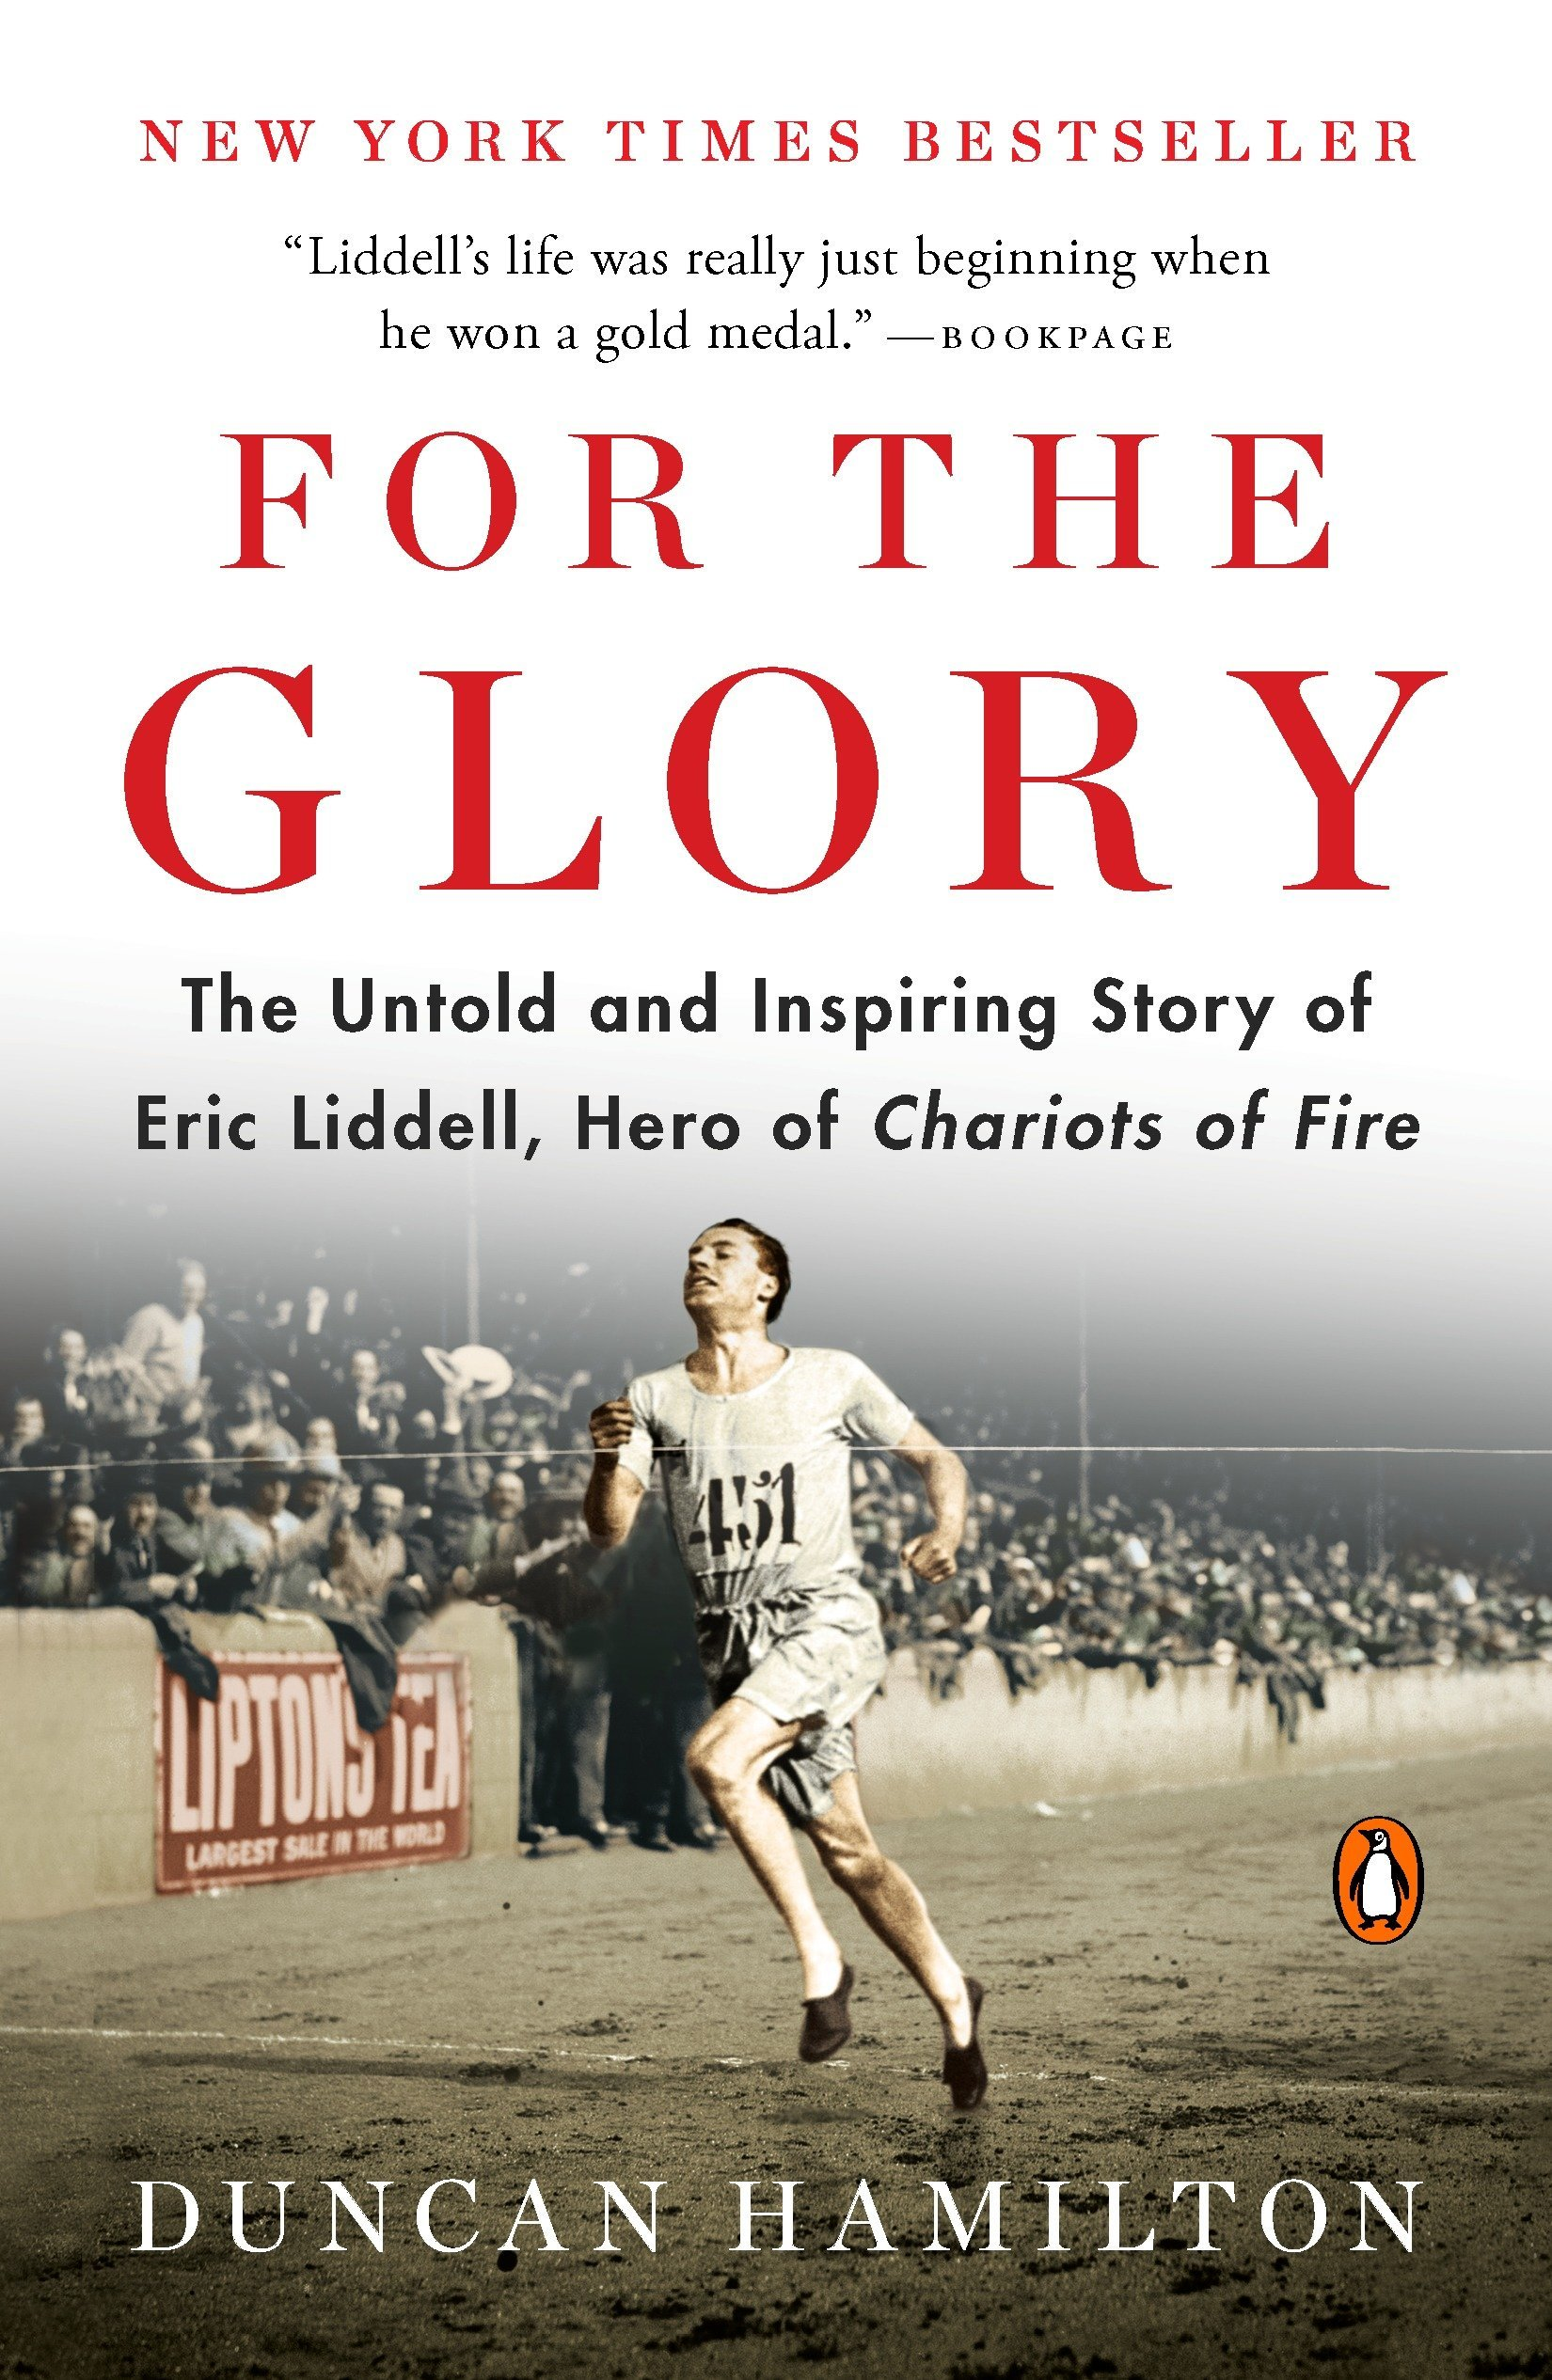 Read Online For the Glory: The Untold and Inspiring Story of Eric Liddell, Hero of Chariots of Fire pdf